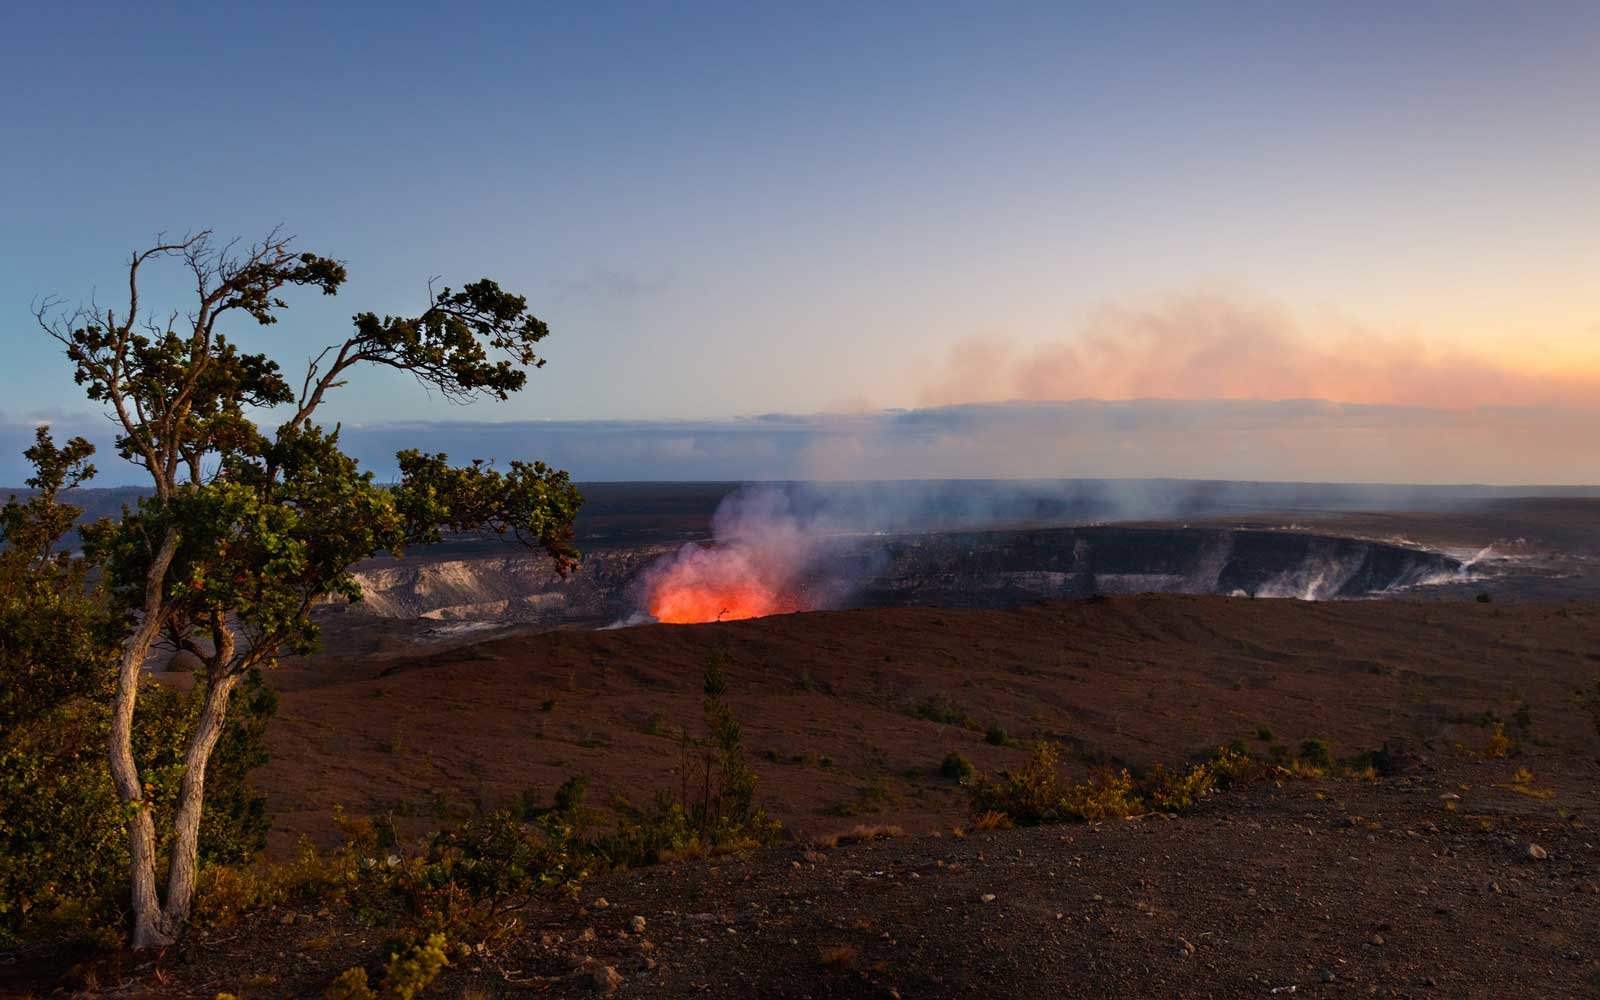 Hawaii S Kilauea Volcano Could Erupt At Any Moment